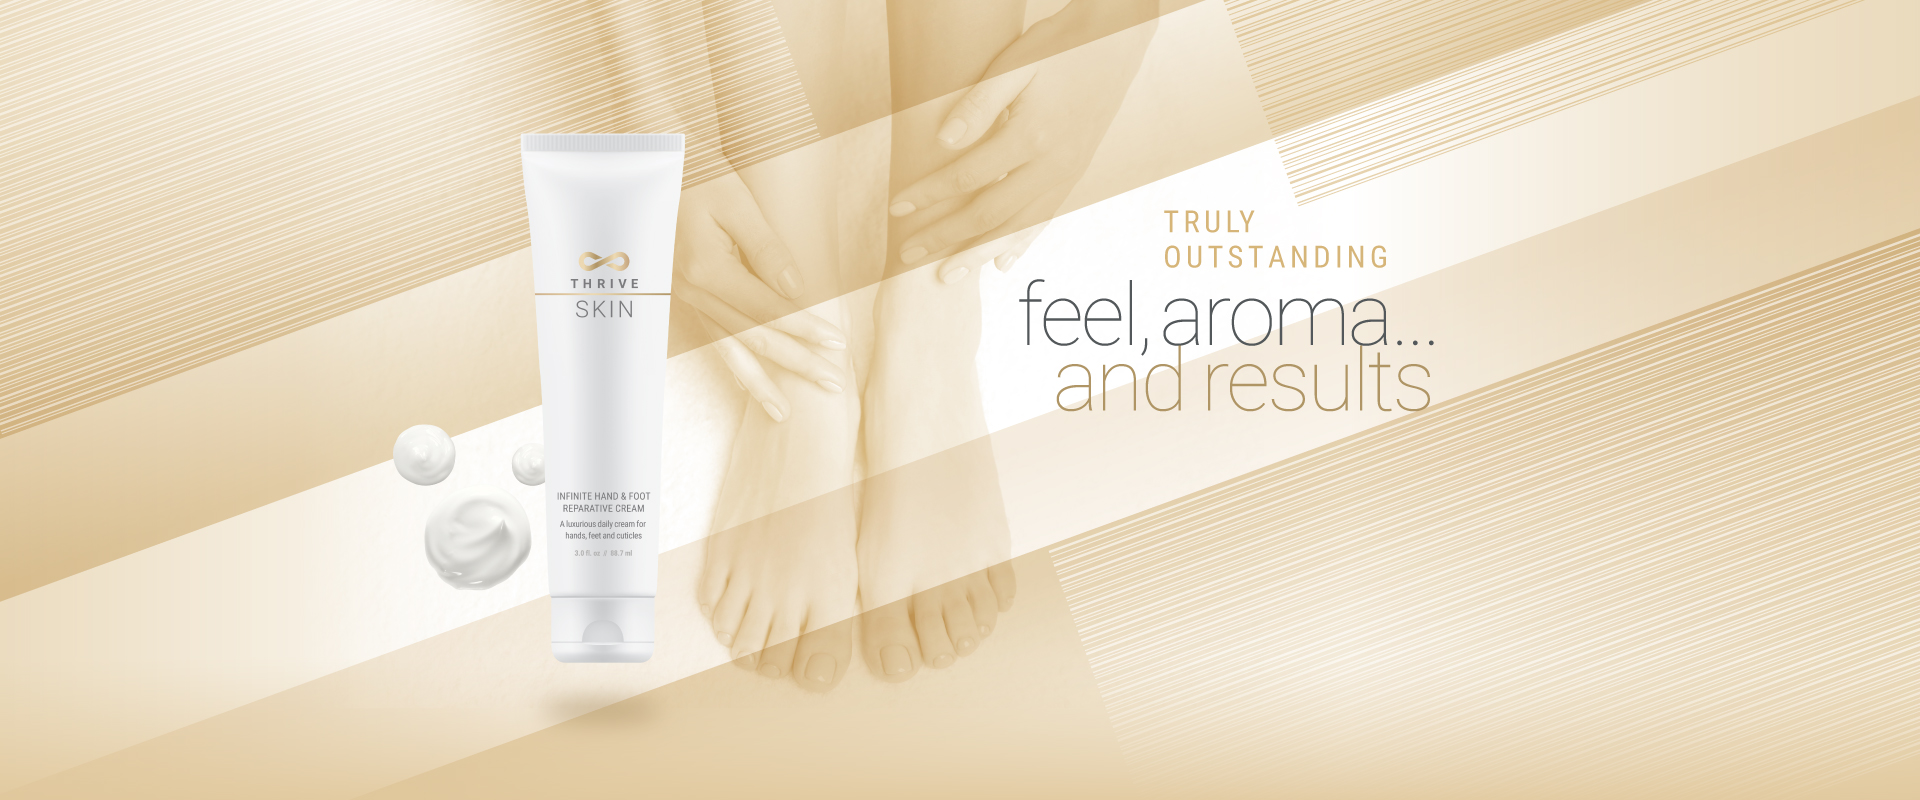 THRIVE SKIN Han And Foot Cream